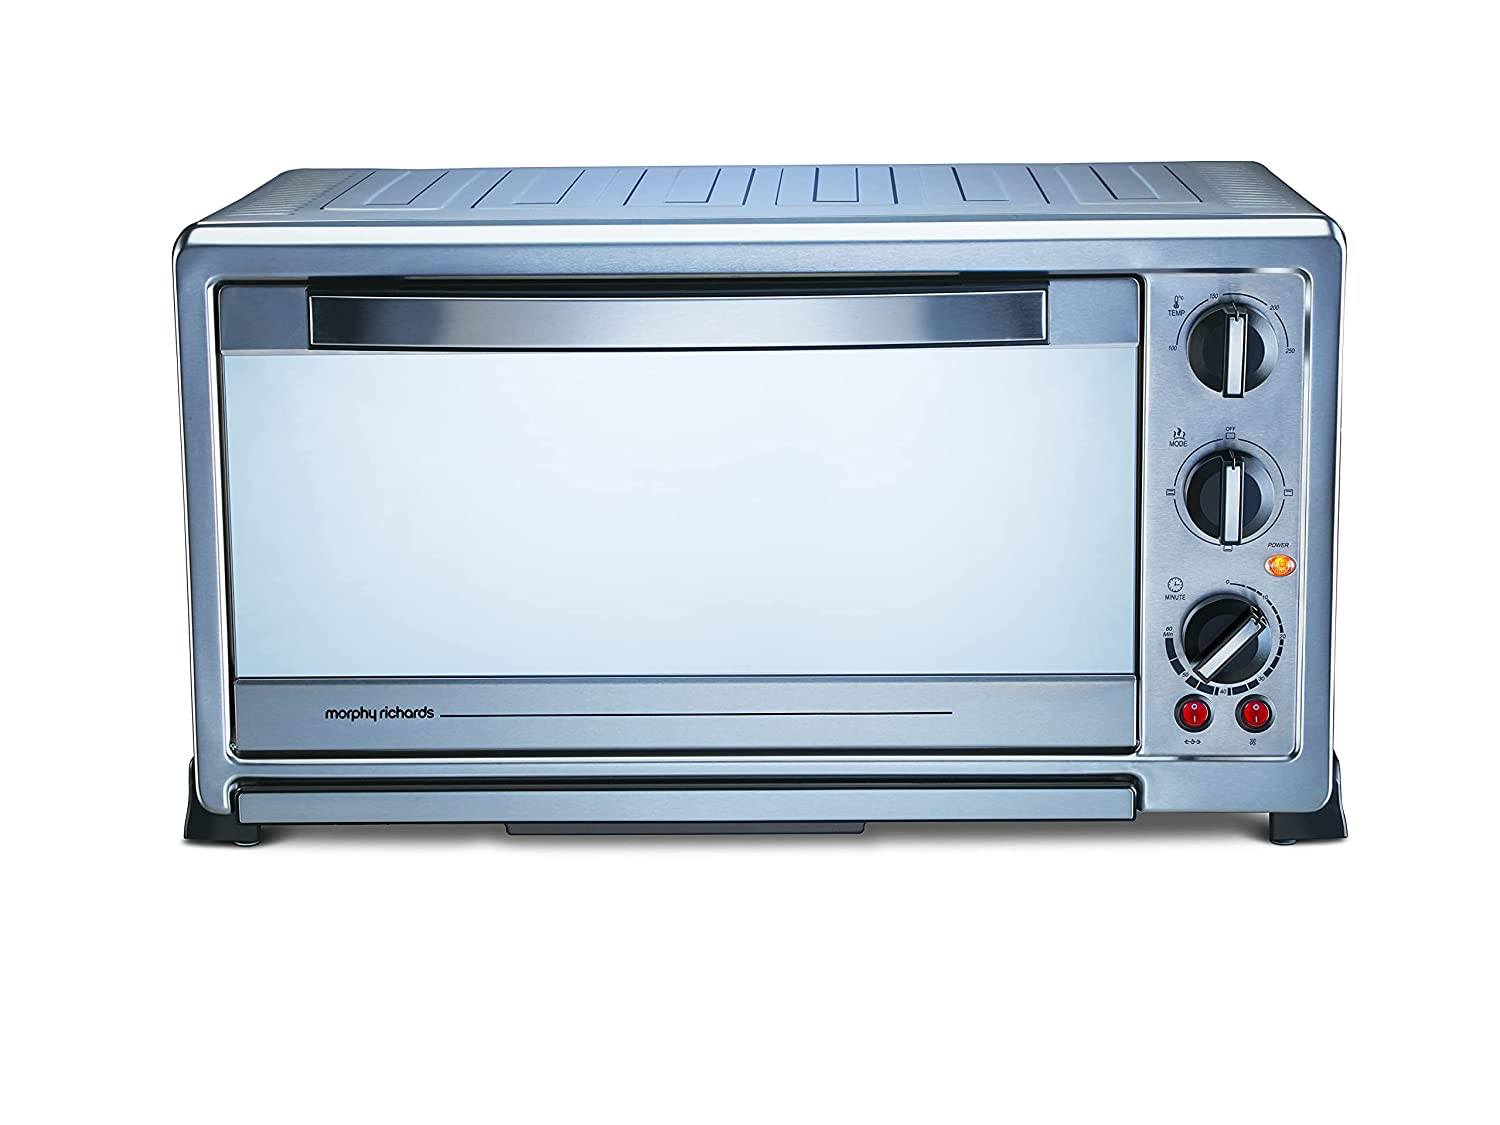 Morphy Richards 60 RCSS 60 Liters Oven Toaster Grill, Black